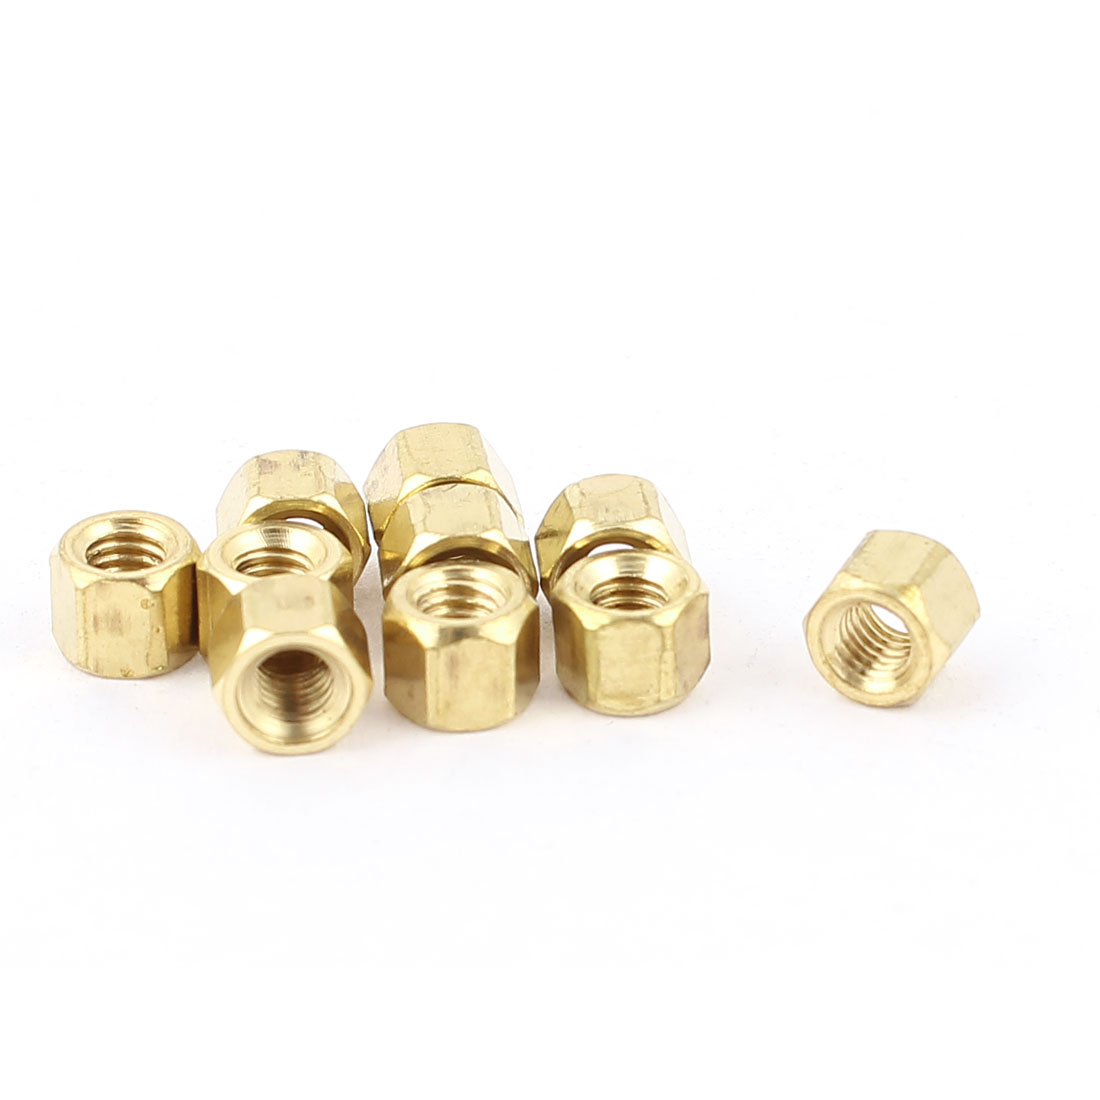 M3 x 4mm Female/Female Thread Brass Hex Standoff PCB Pillar Spacer 10pcs